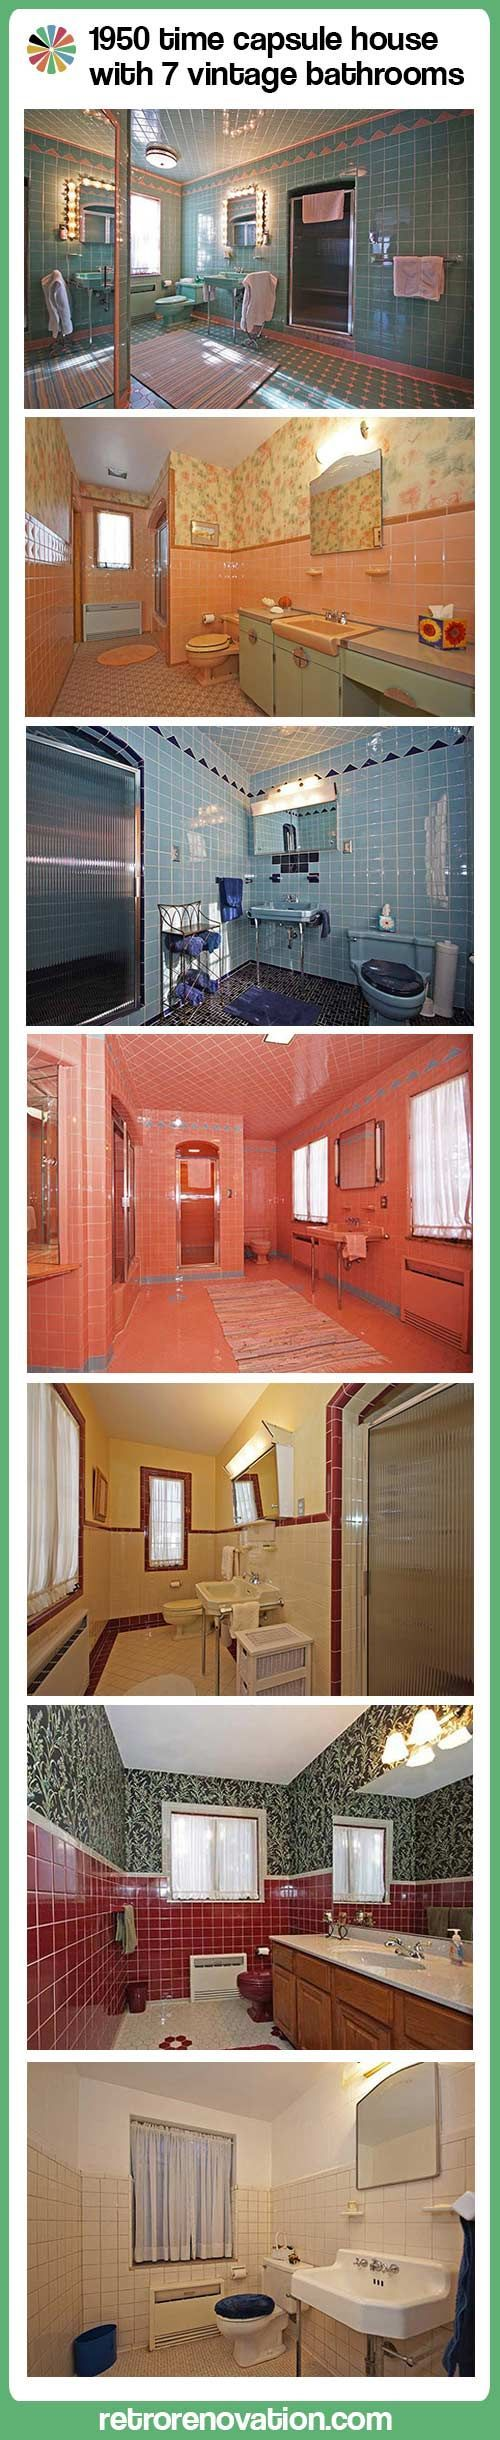 1950 Time Capsule House with 7 vintage bathrooms — Grosse Point Park, Mich.